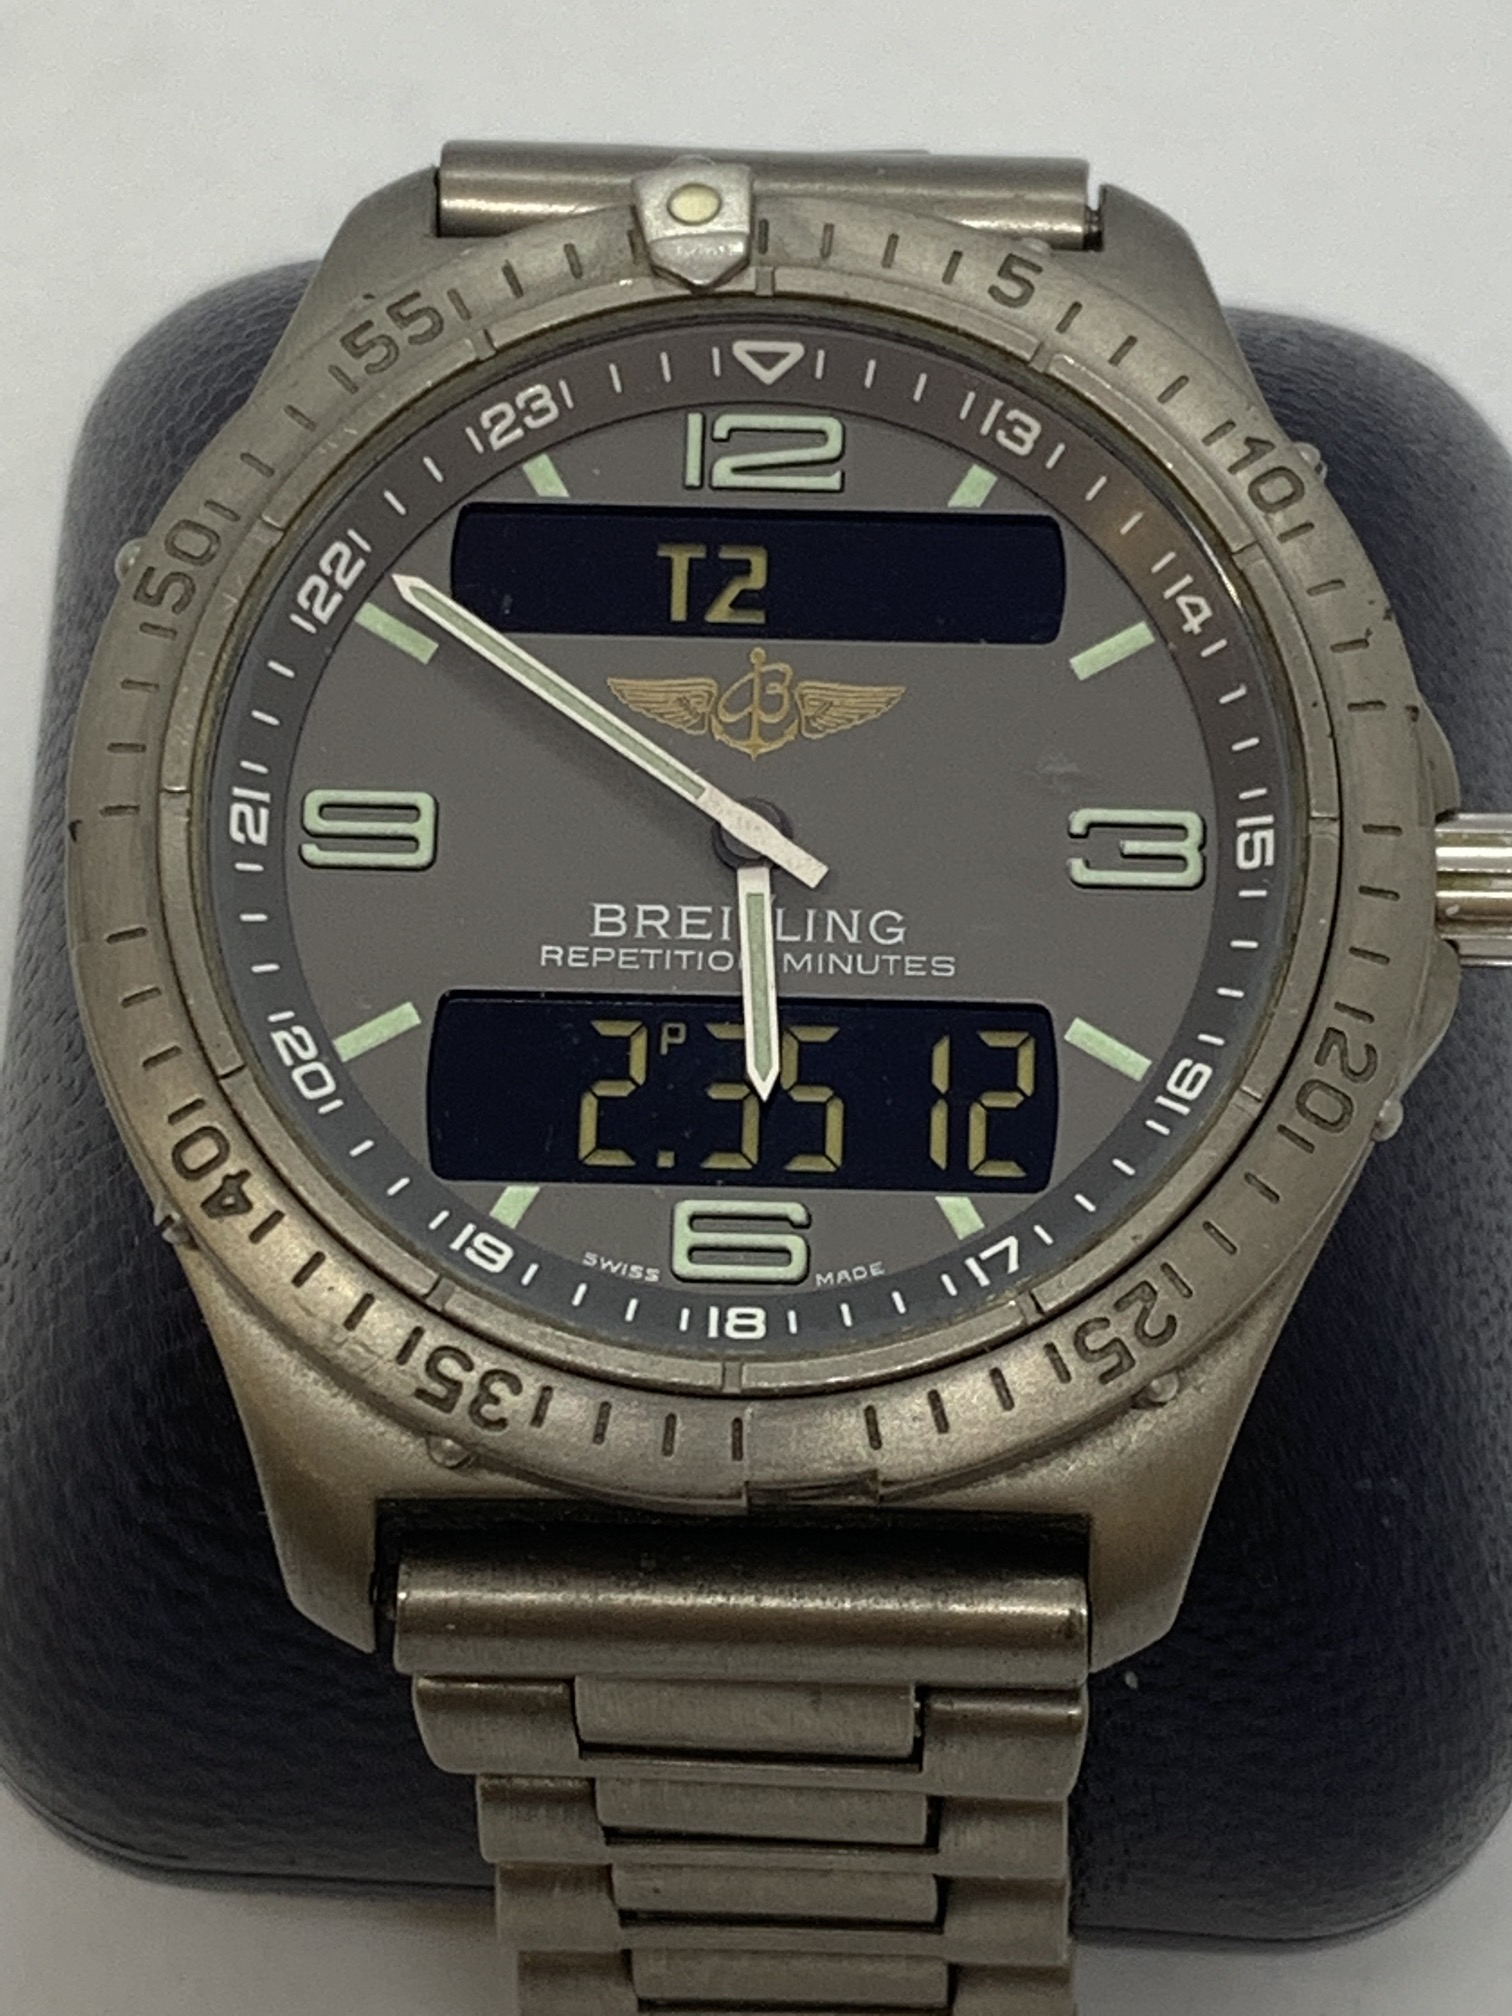 BREITLING TITANIUM WATCH A/F - Image 3 of 15